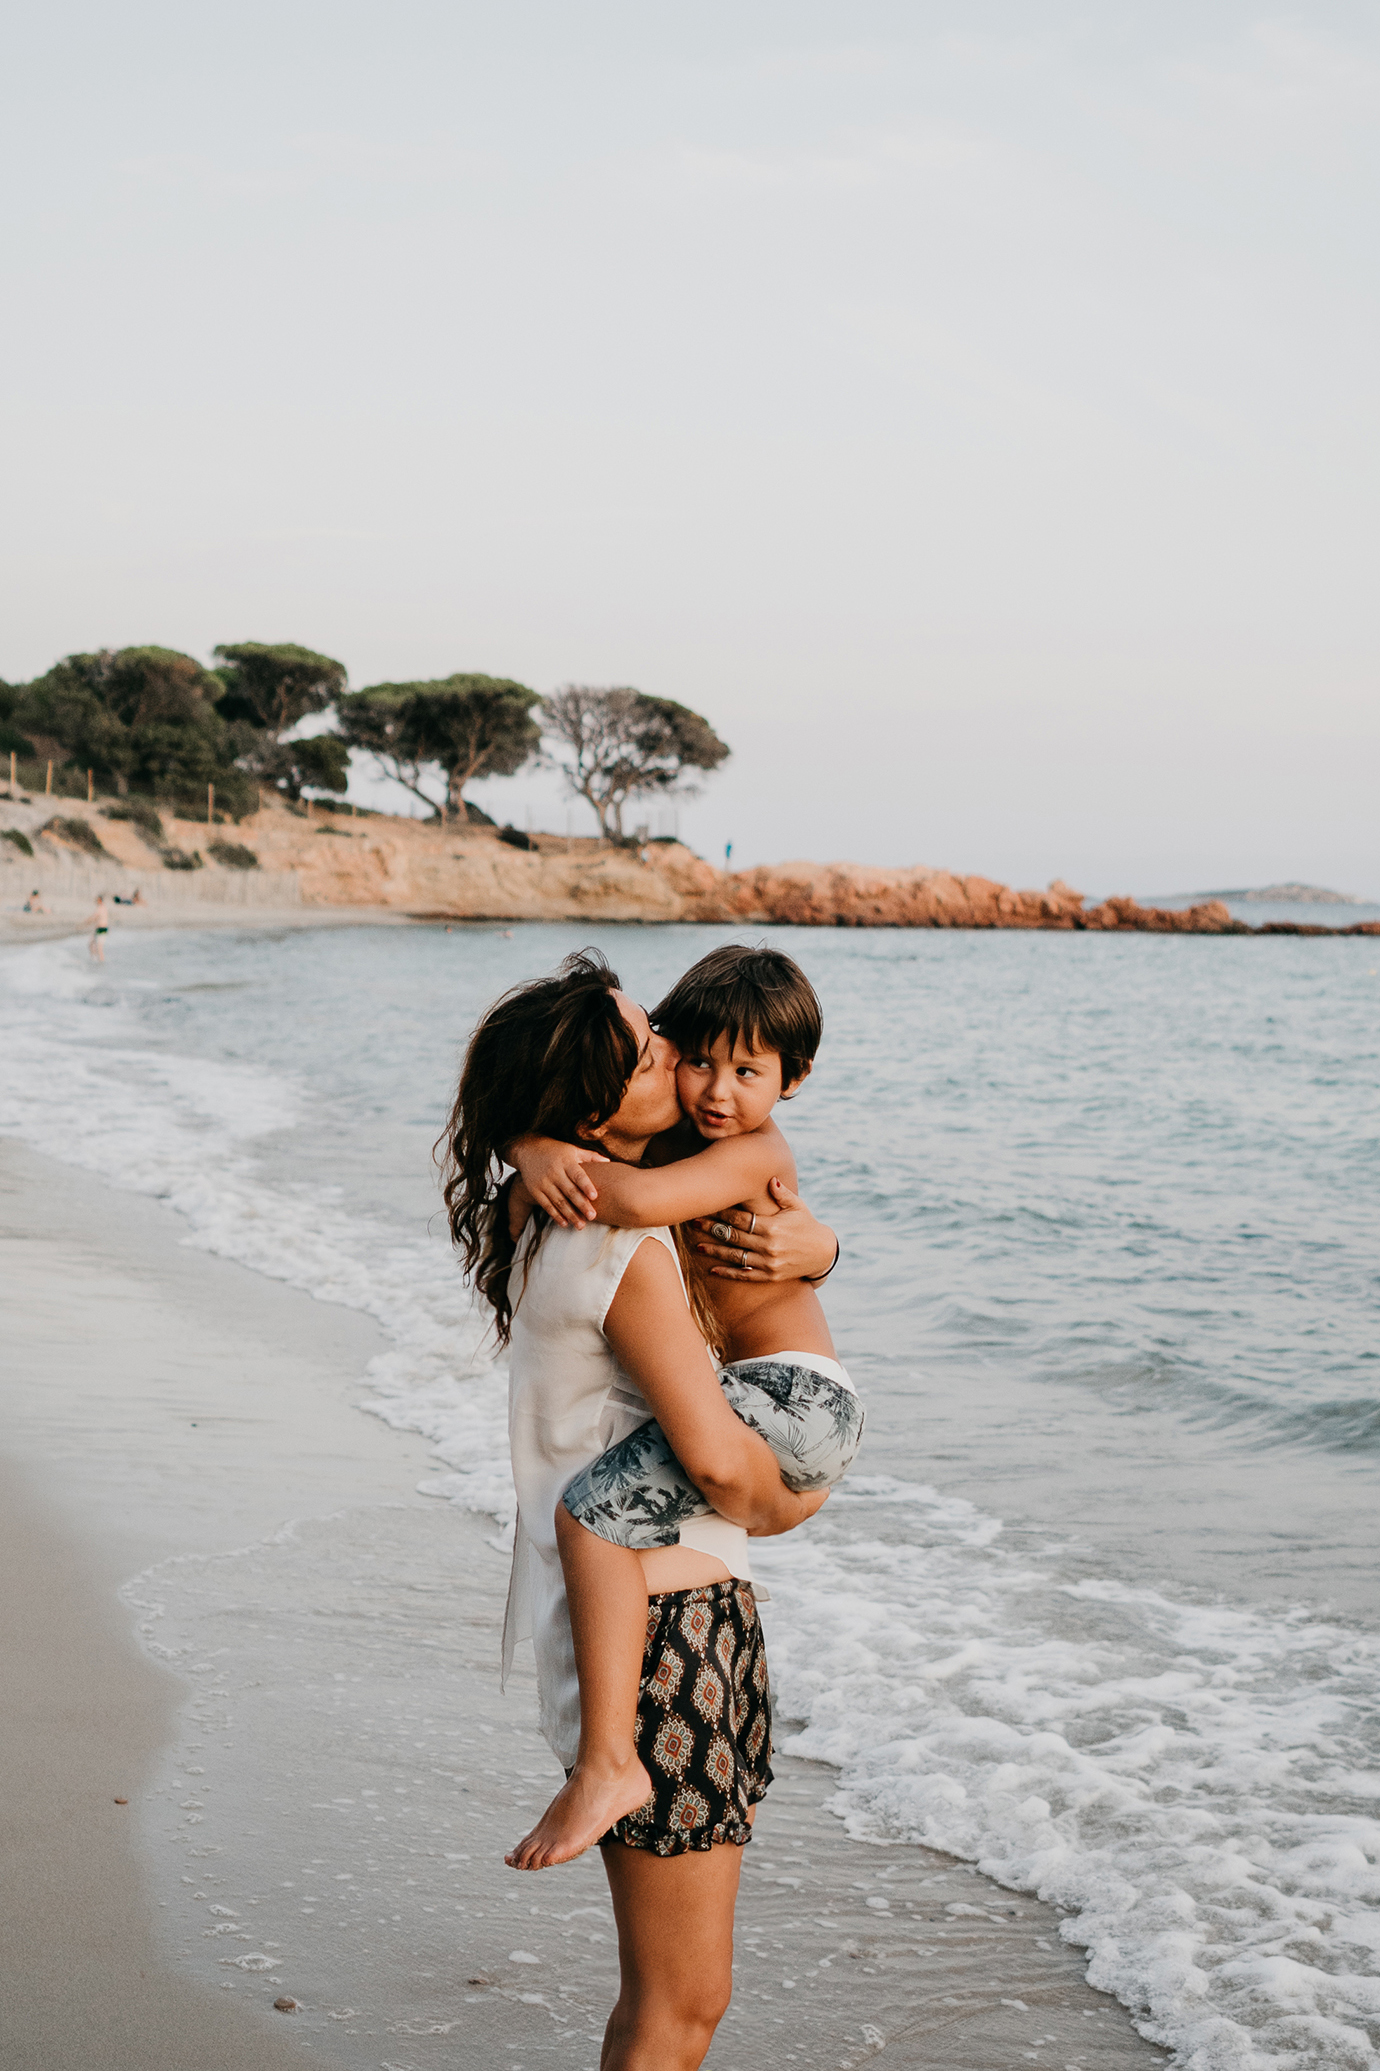 mom hugging kid on the beach during family lifestyle photo session in palombaggia beach, santa giulia. Corsica. by rebecca rinaldi photography